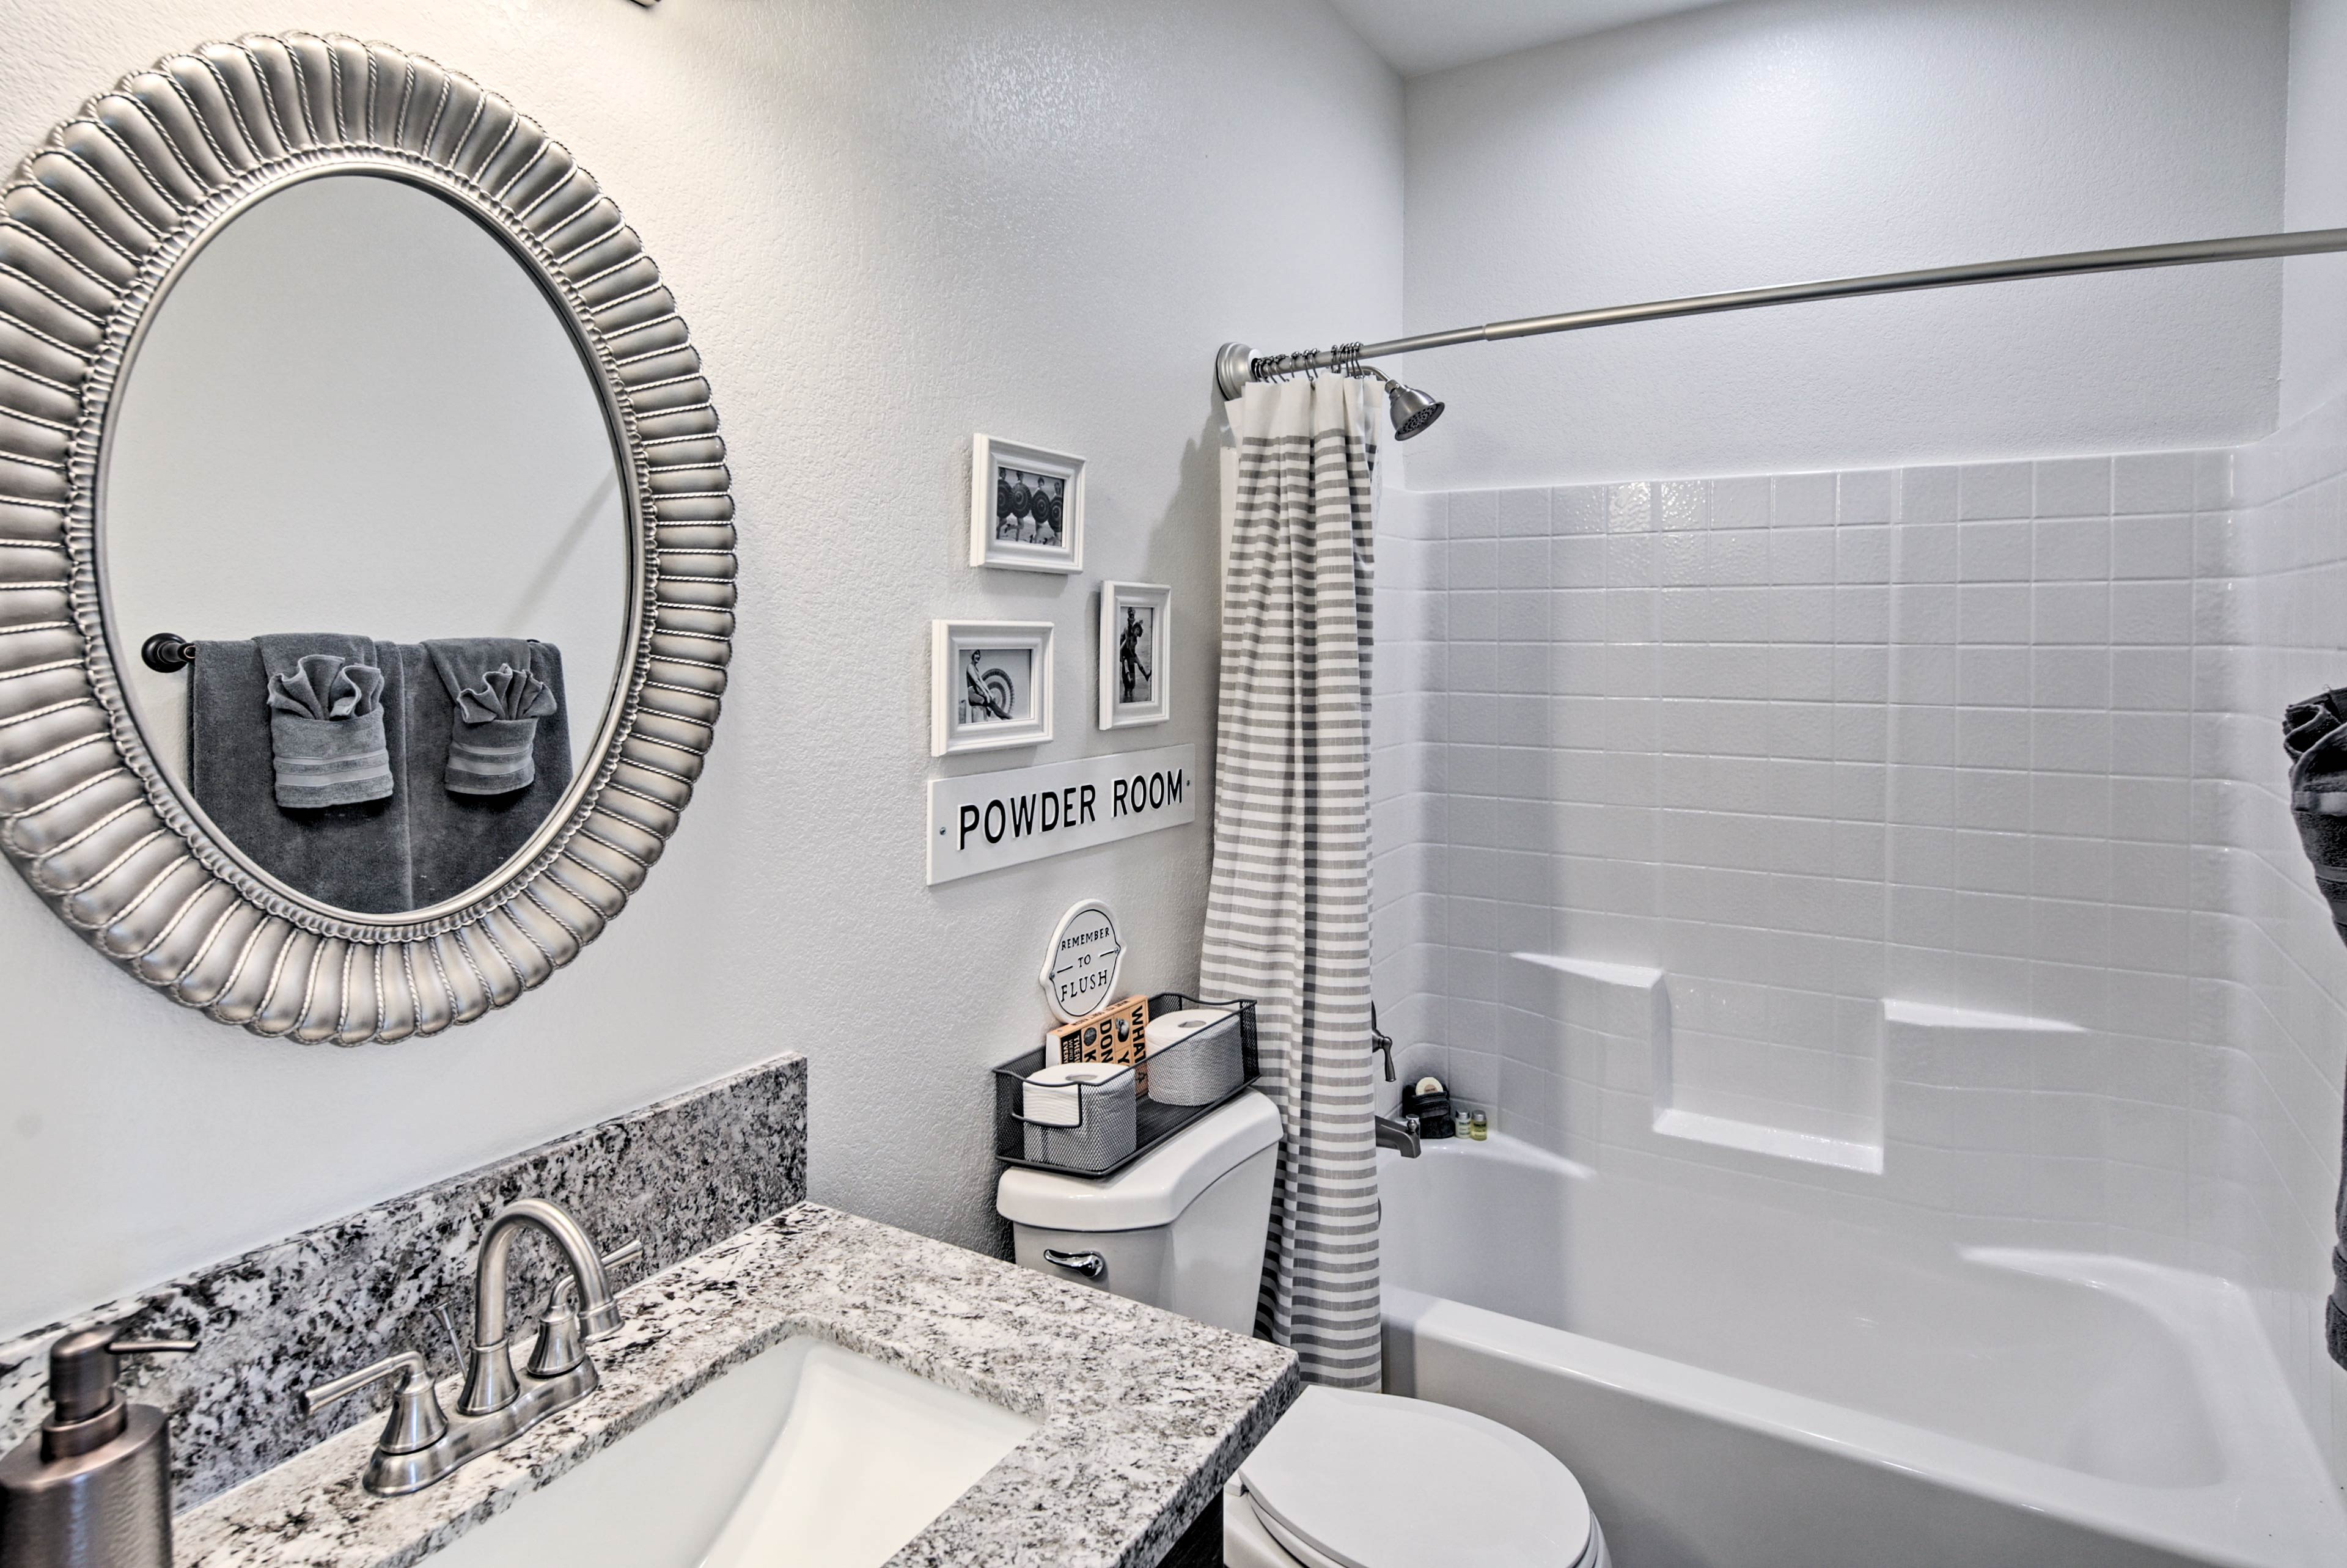 Take a long soak in the second bathroom's shower/tub combo!